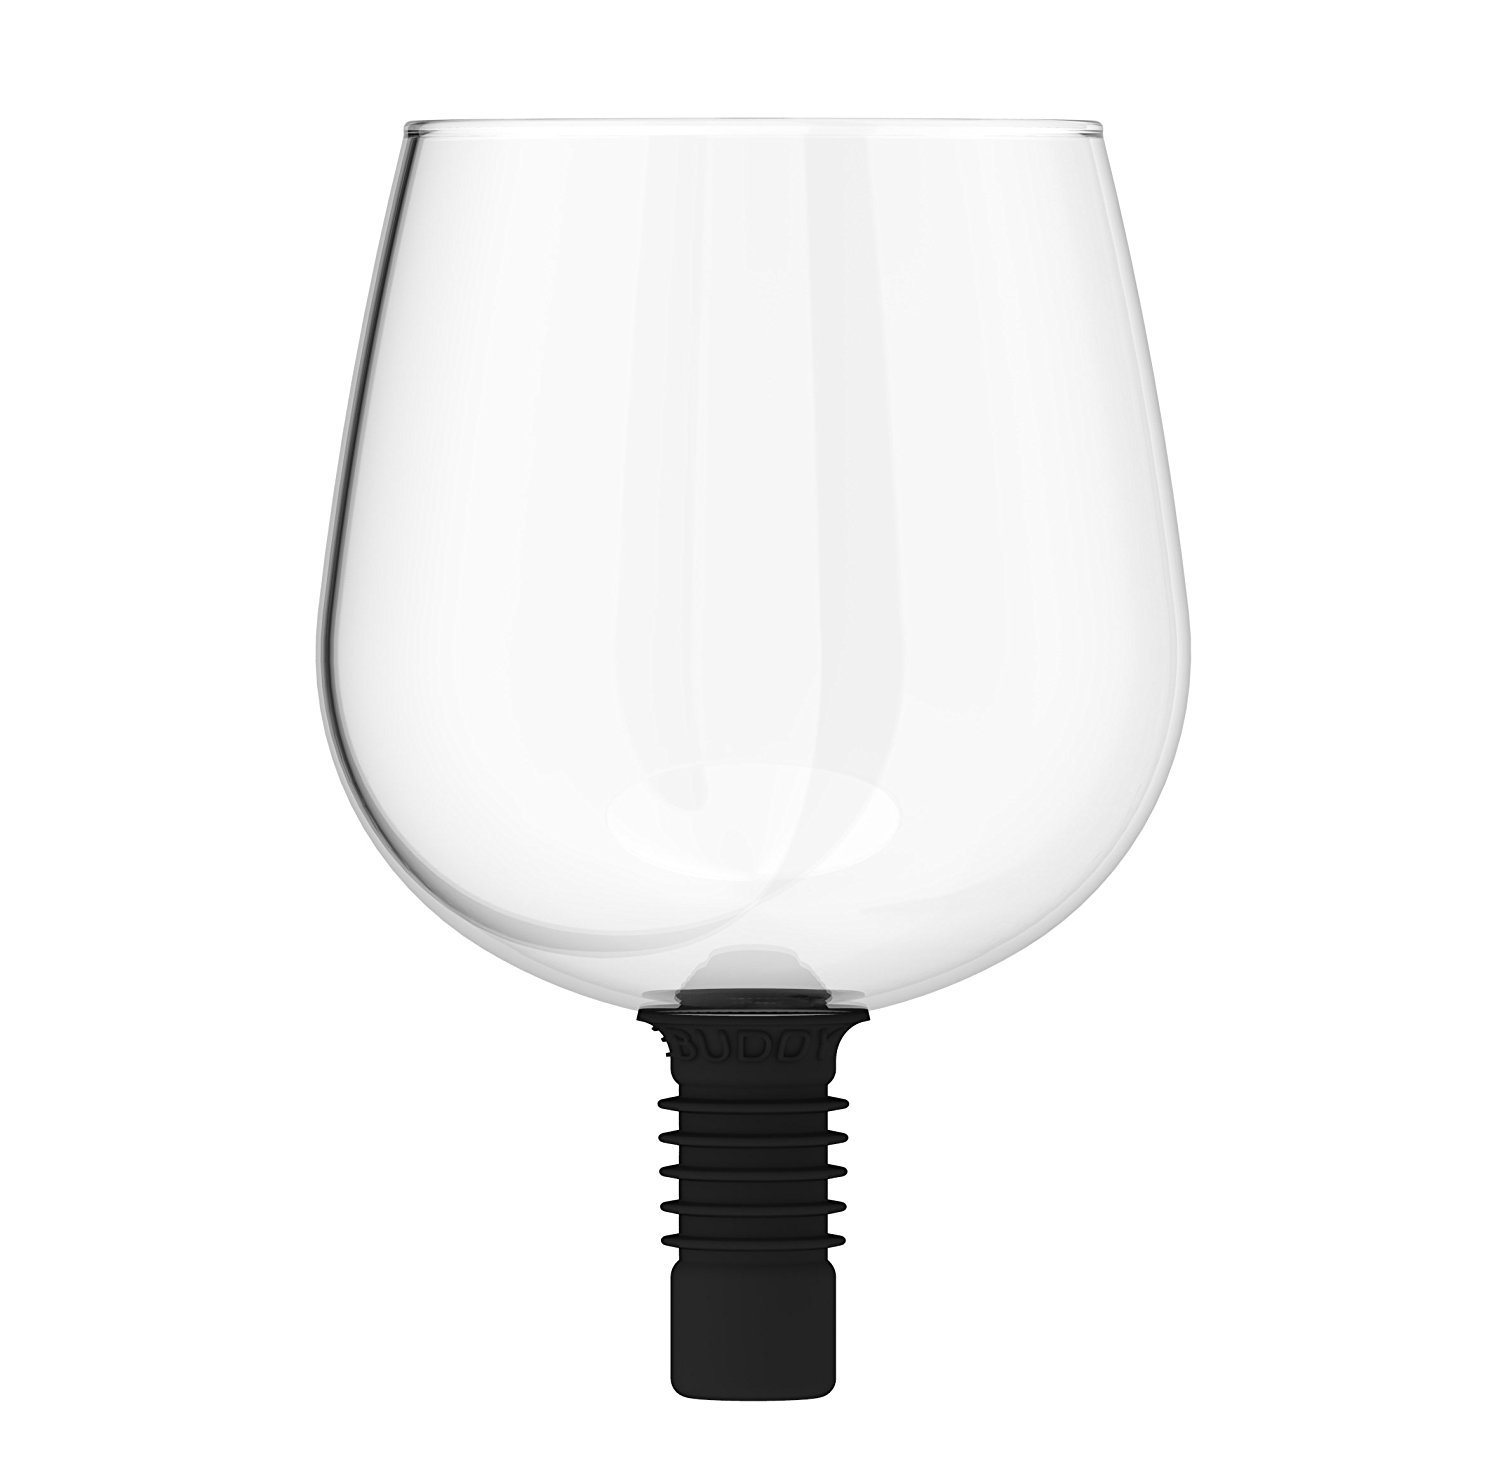 Guzzle Buddy Wine Bottle Glass Topper 16 Oz, It Turns Your Bottle of Wine Into Your Wine Glass-The Original, As seen on Shark Tank